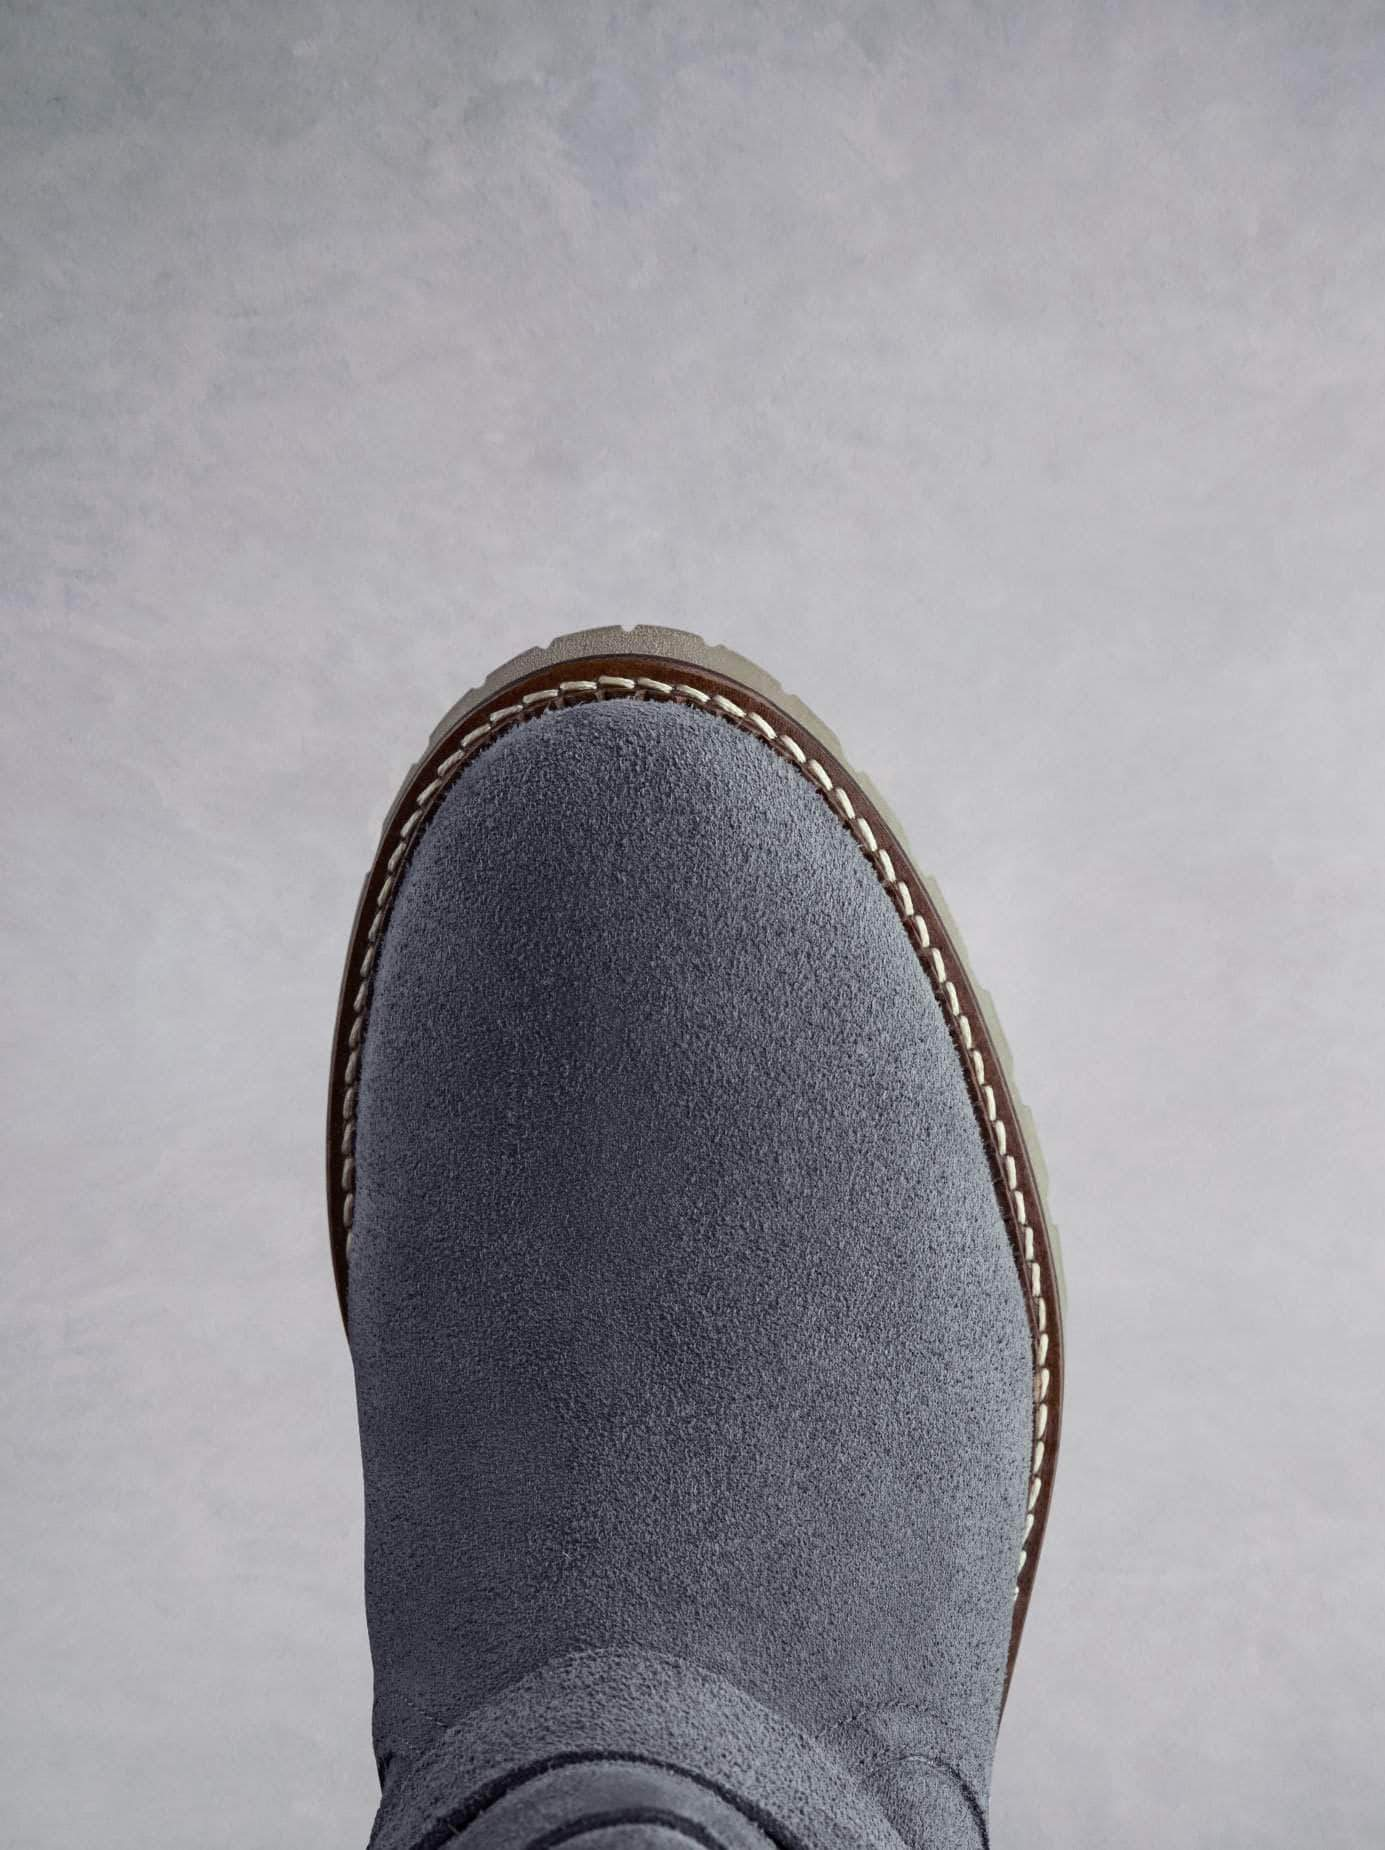 Longleat has a round toe shape with contrast white stitching.